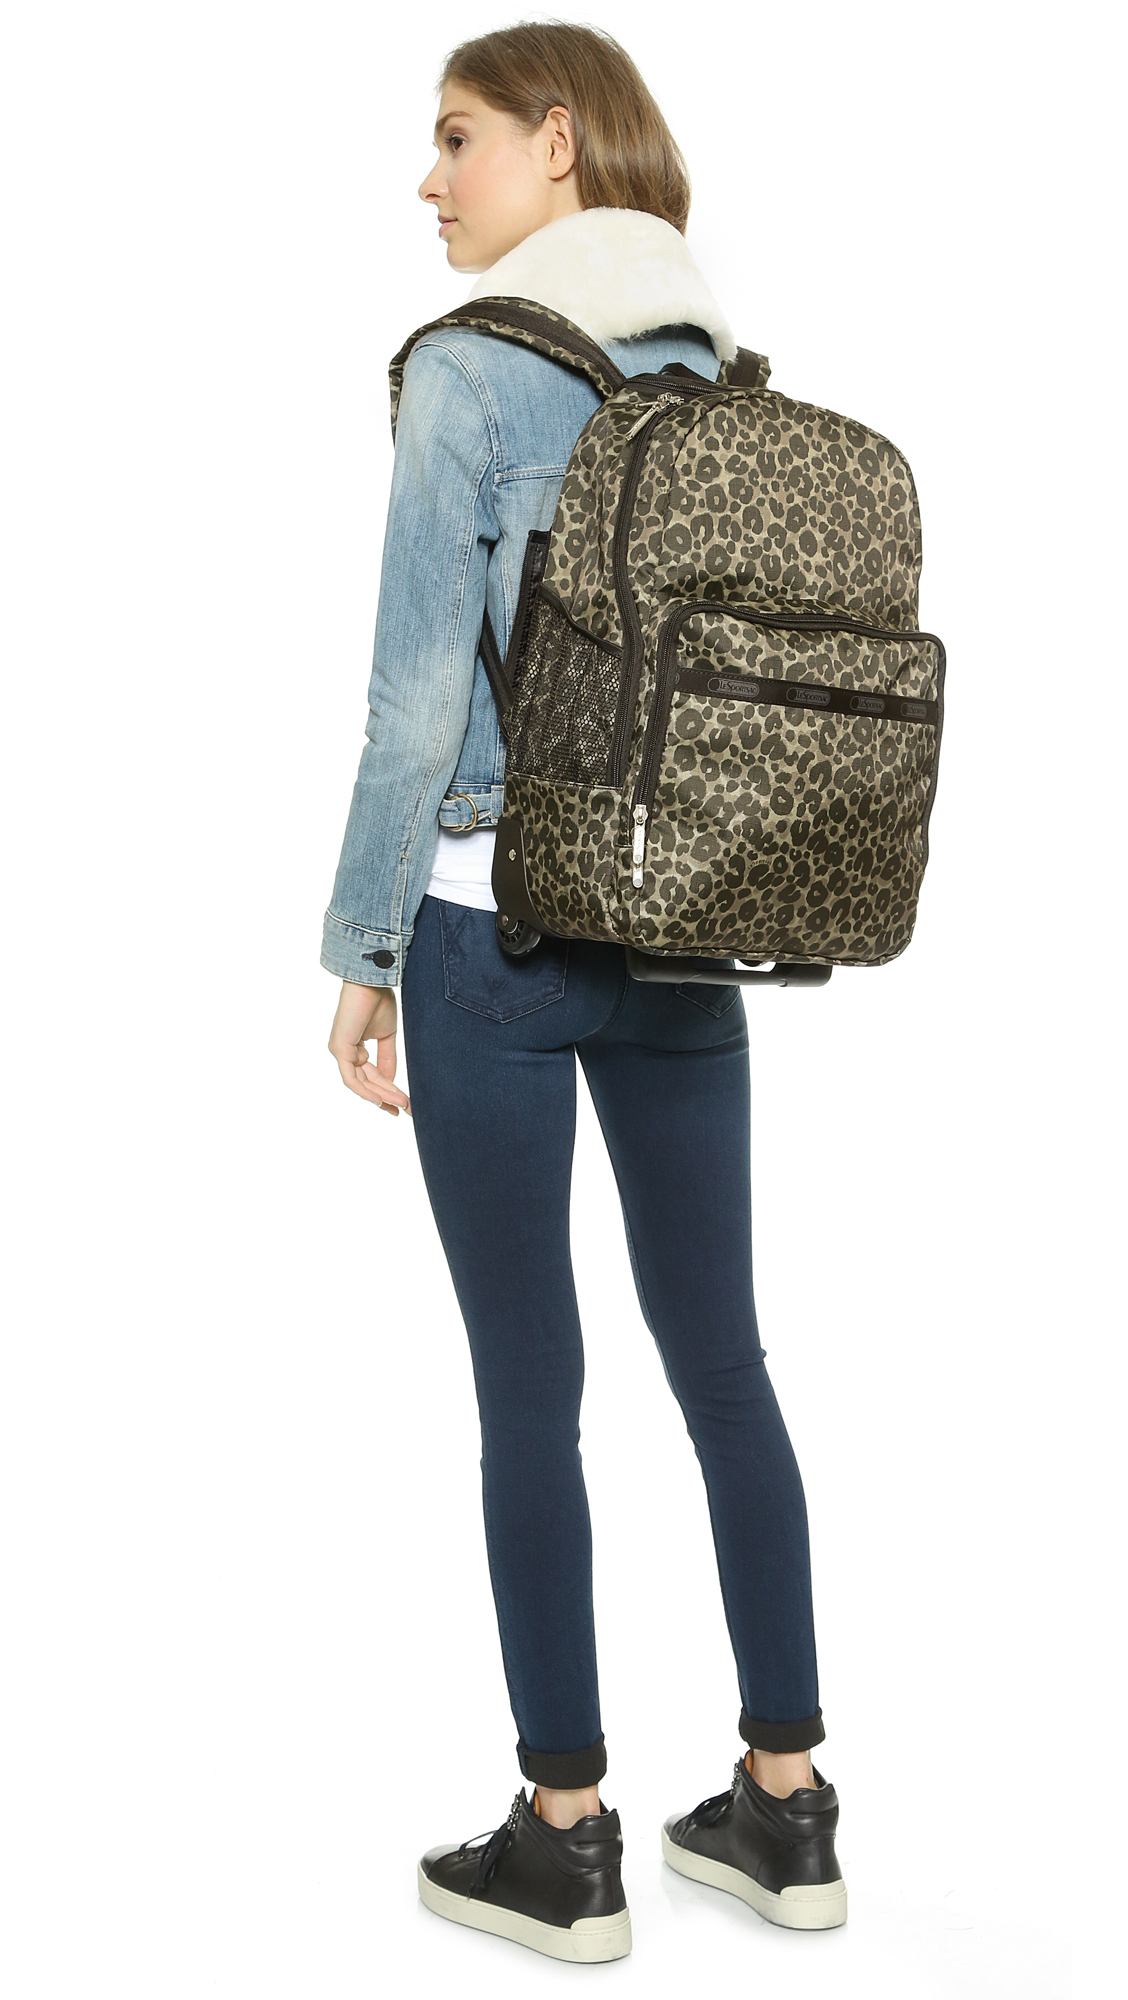 Lyst - Lesportsac Rolling Backpack - Army Cheetah in Green